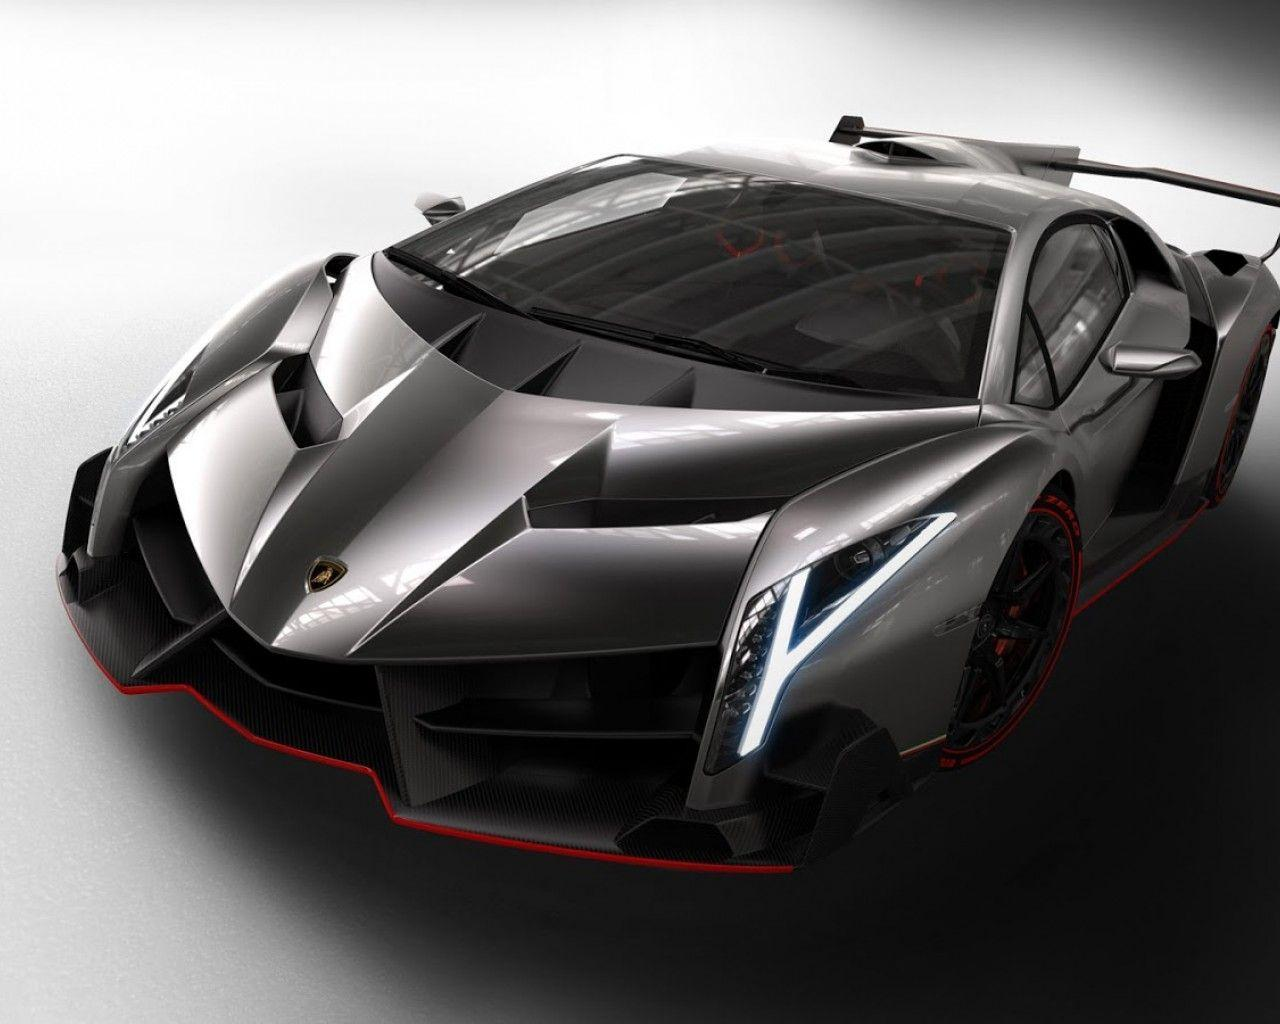 Fastest Car In The World 2015 >> Fastest Car In The World Wallpapers 2016 Wallpaper Cave